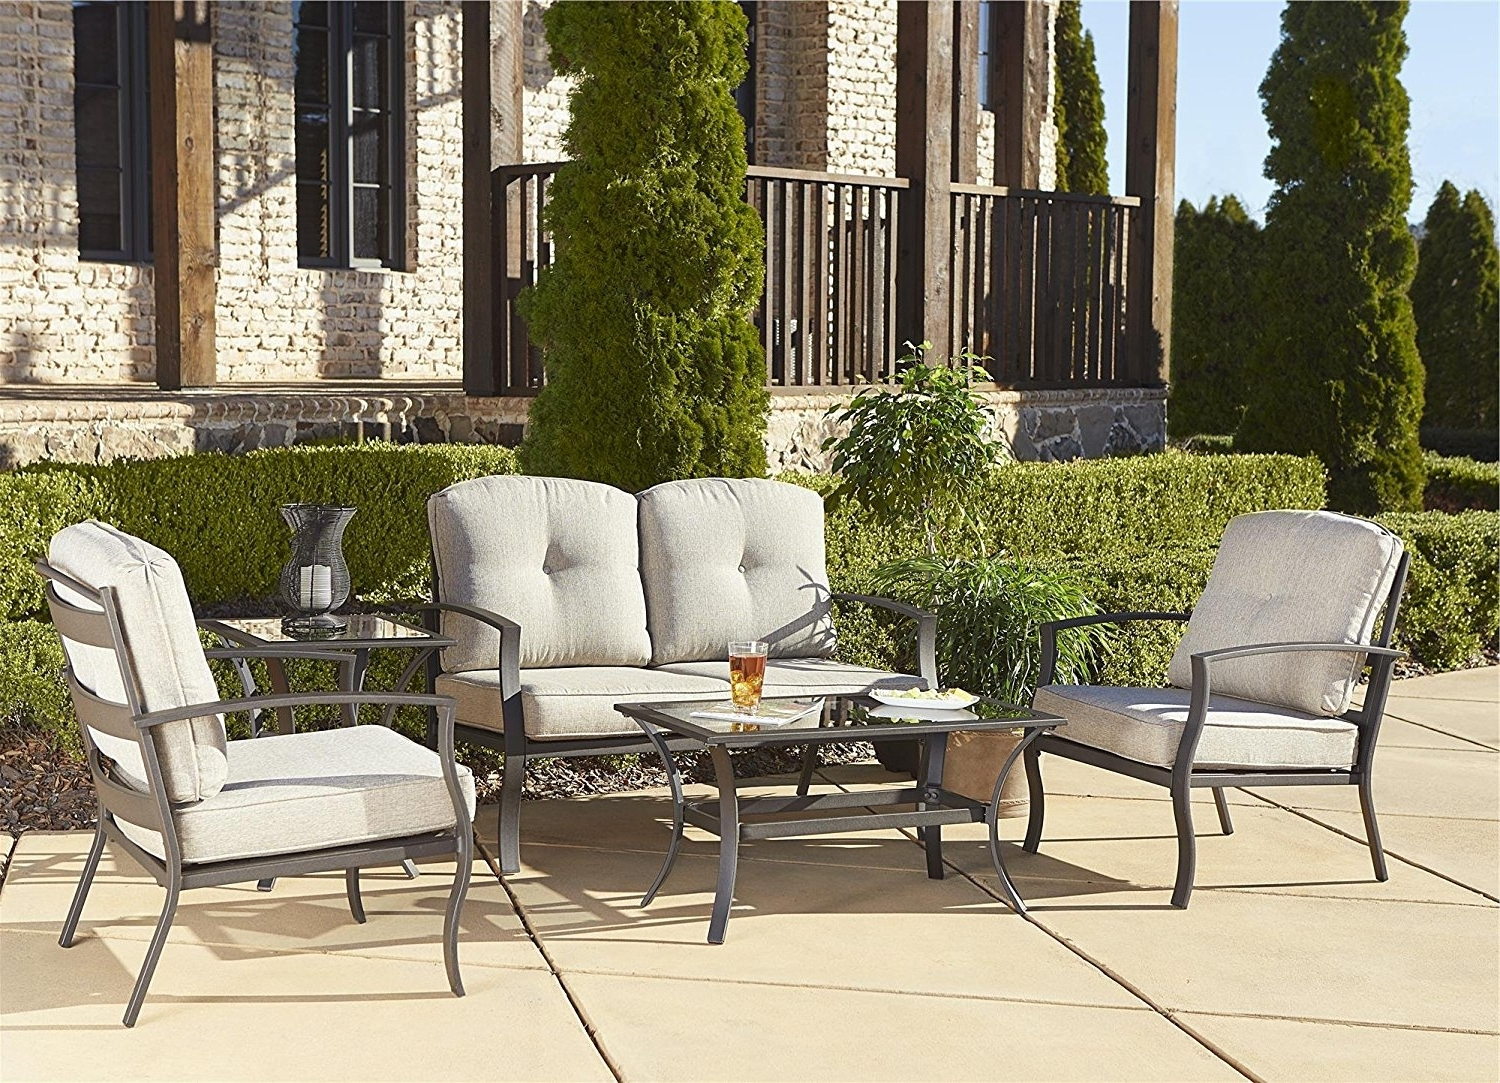 Big Lots Patio Furniture Target Patio Furniture Gas Fire Pit Chat Pertaining To Well Liked Patio Conversation Sets Under $ (View 15 of 15)